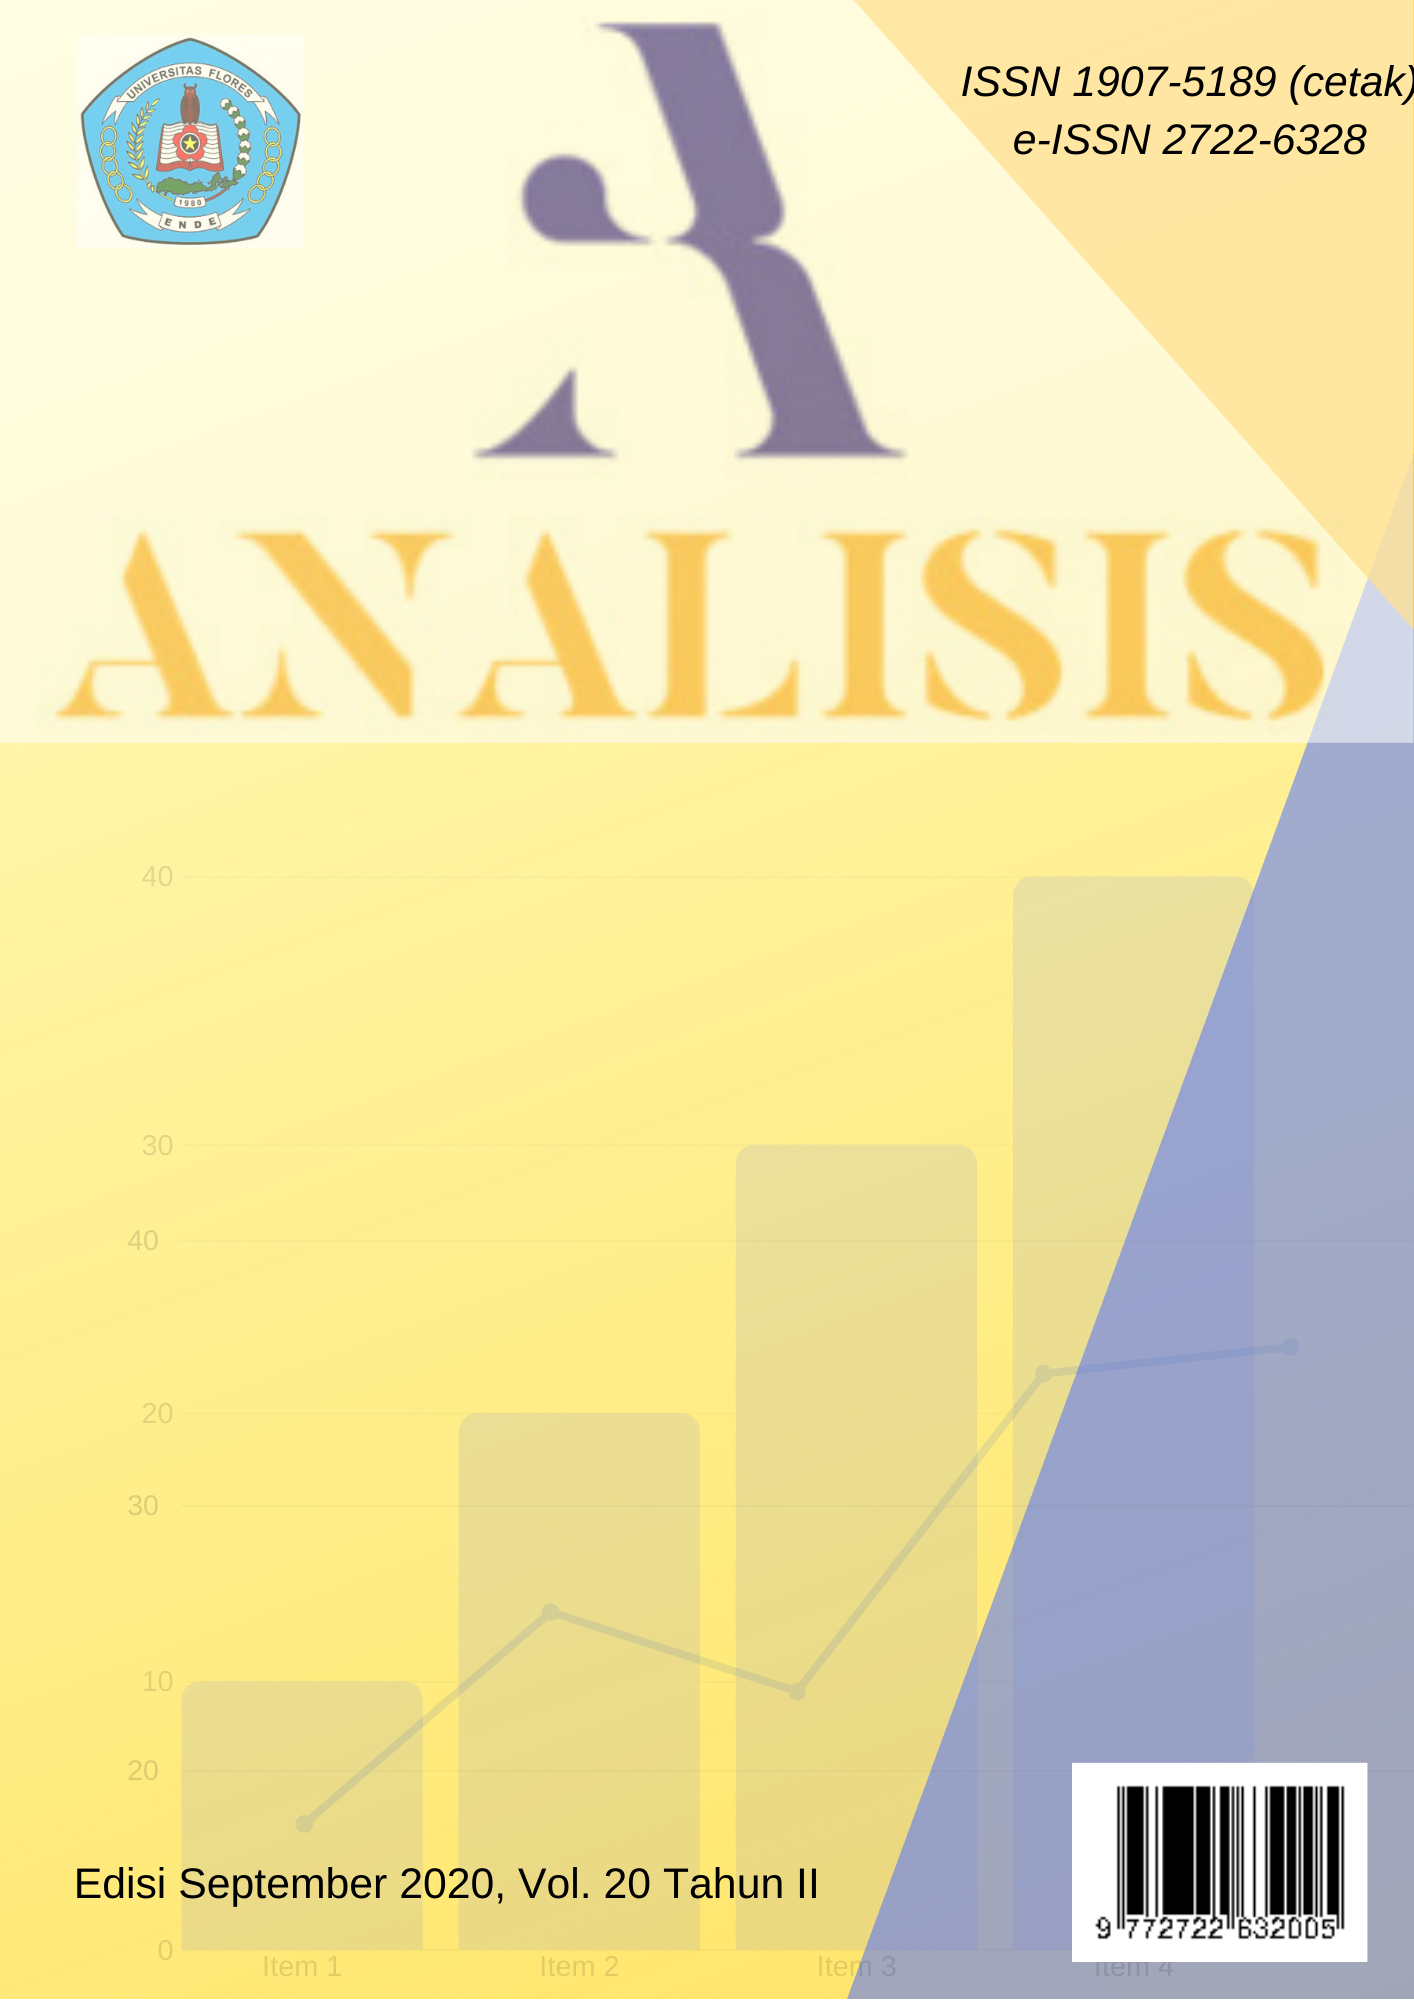 View Vol. 20 No. II (2020): ANALISIS VOL. 20 TAHUN II EDISI SEPTEMBER 2020